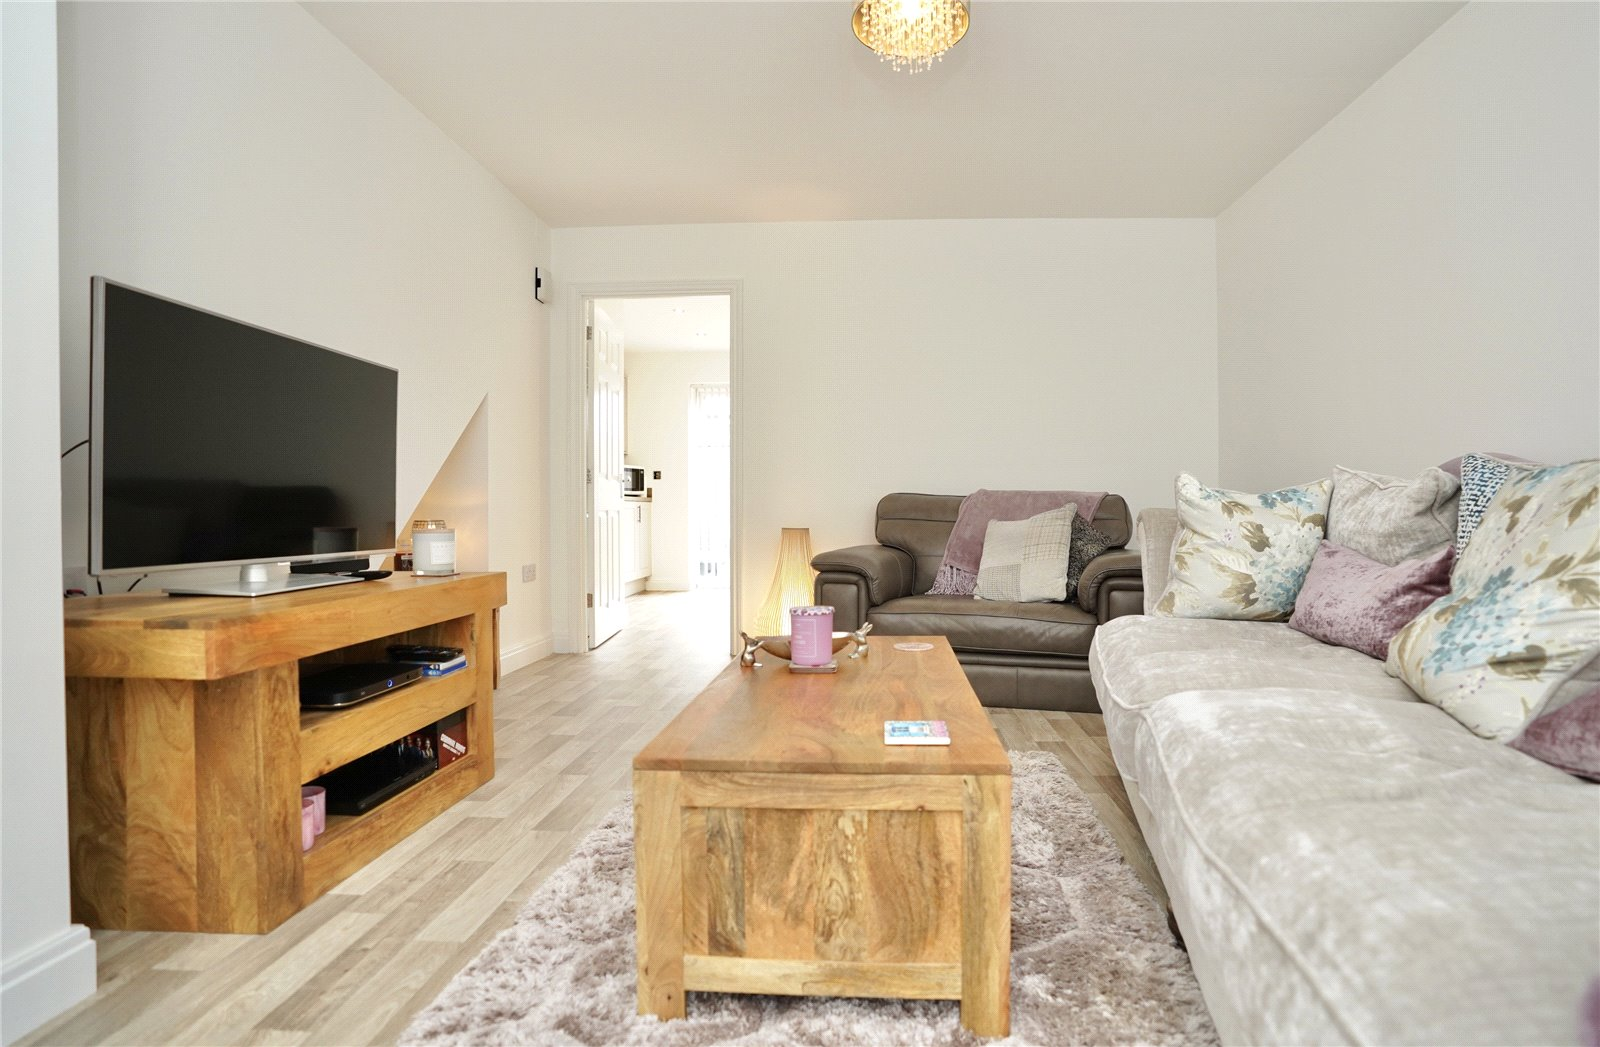 3 bed house for sale in Sawtry, PE28 5ZJ 4